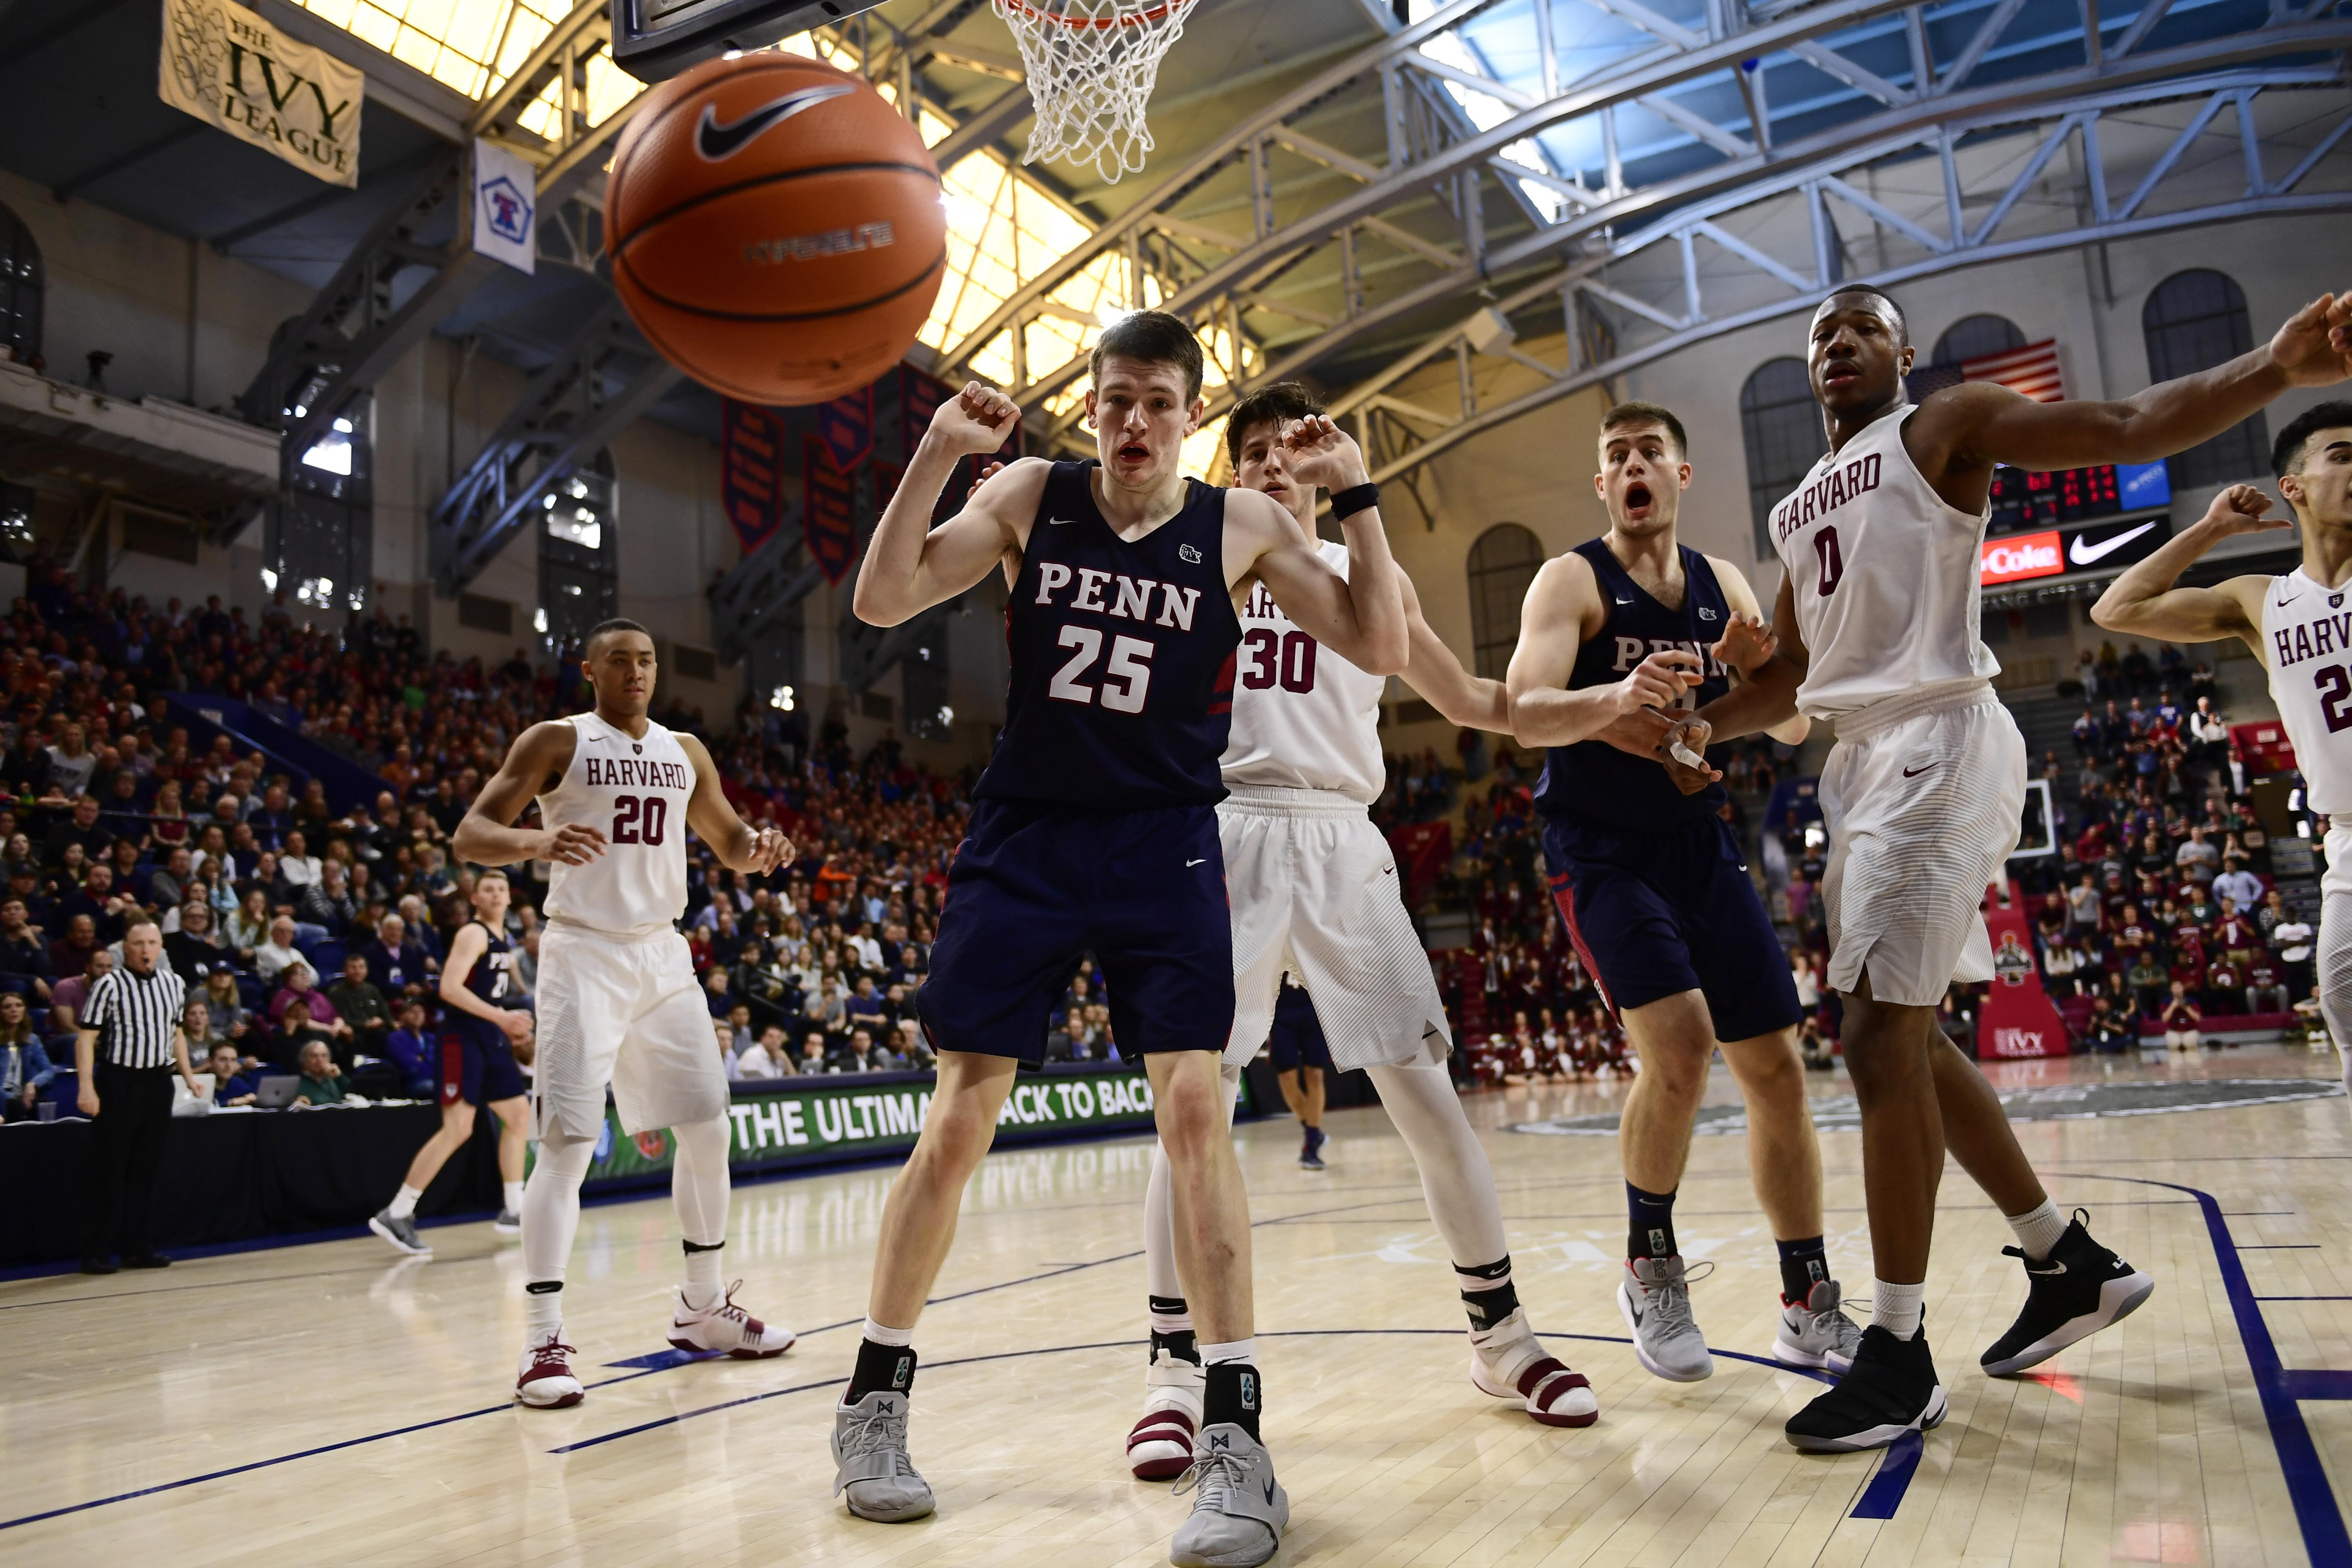 PHILADELPHIA, PA - MARCH 11: (L-R) AJ Brodeur #25 of the Pennsylvania Quakers Danilo Djuricic #30 of the Harvard Crimson Max Rothschild #0 of the Pennsylvania Quakers and Chris Lewis #0 of the Harvard Crimson watch the ball bounce out of bounds during the second half of the Men's Ivy League Championship Tournament at The Palestra on March 11, 2018 in Philadelphia, Pennsylvania. Penn defeated Harvard 68-65. (Photo by Corey Perrine/Getty Images)